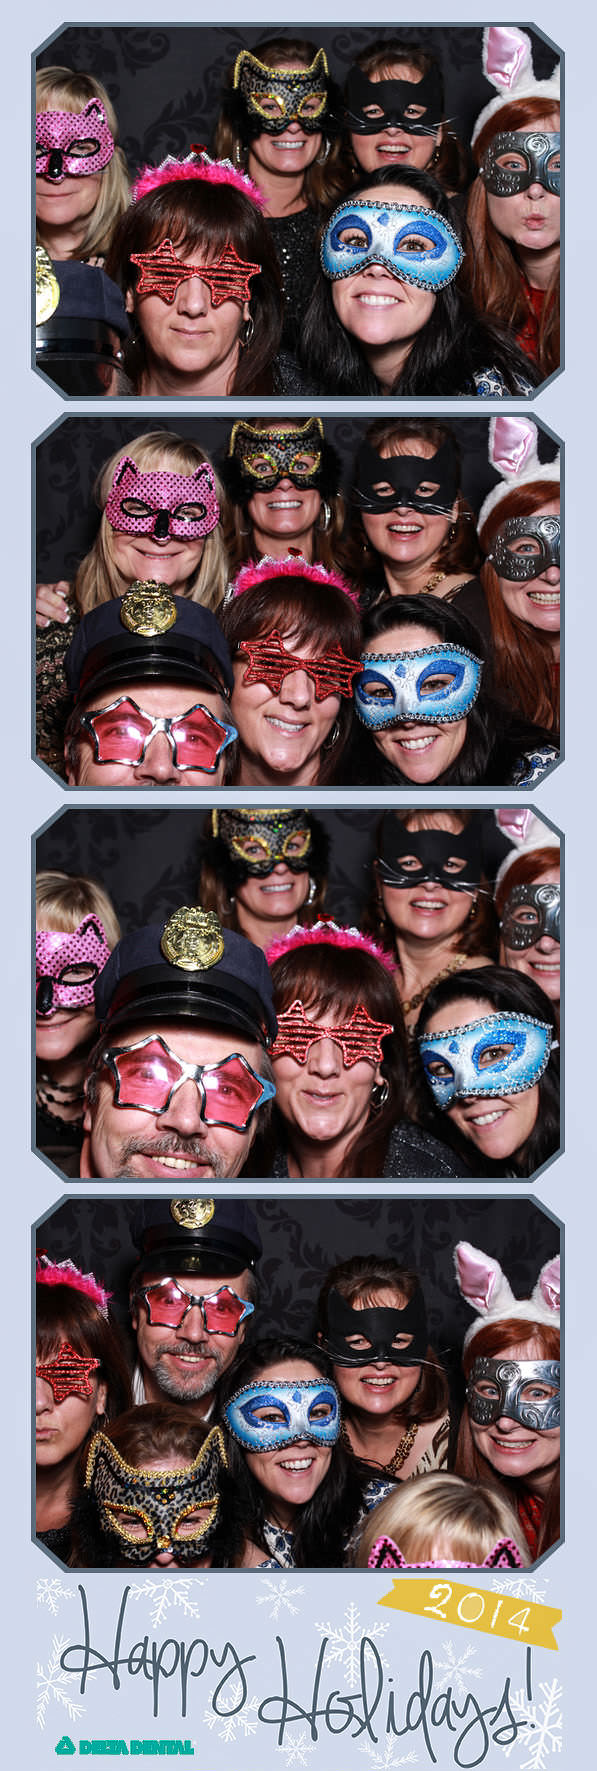 best-photo-booth-rental-for-company-parties-Denver-CO